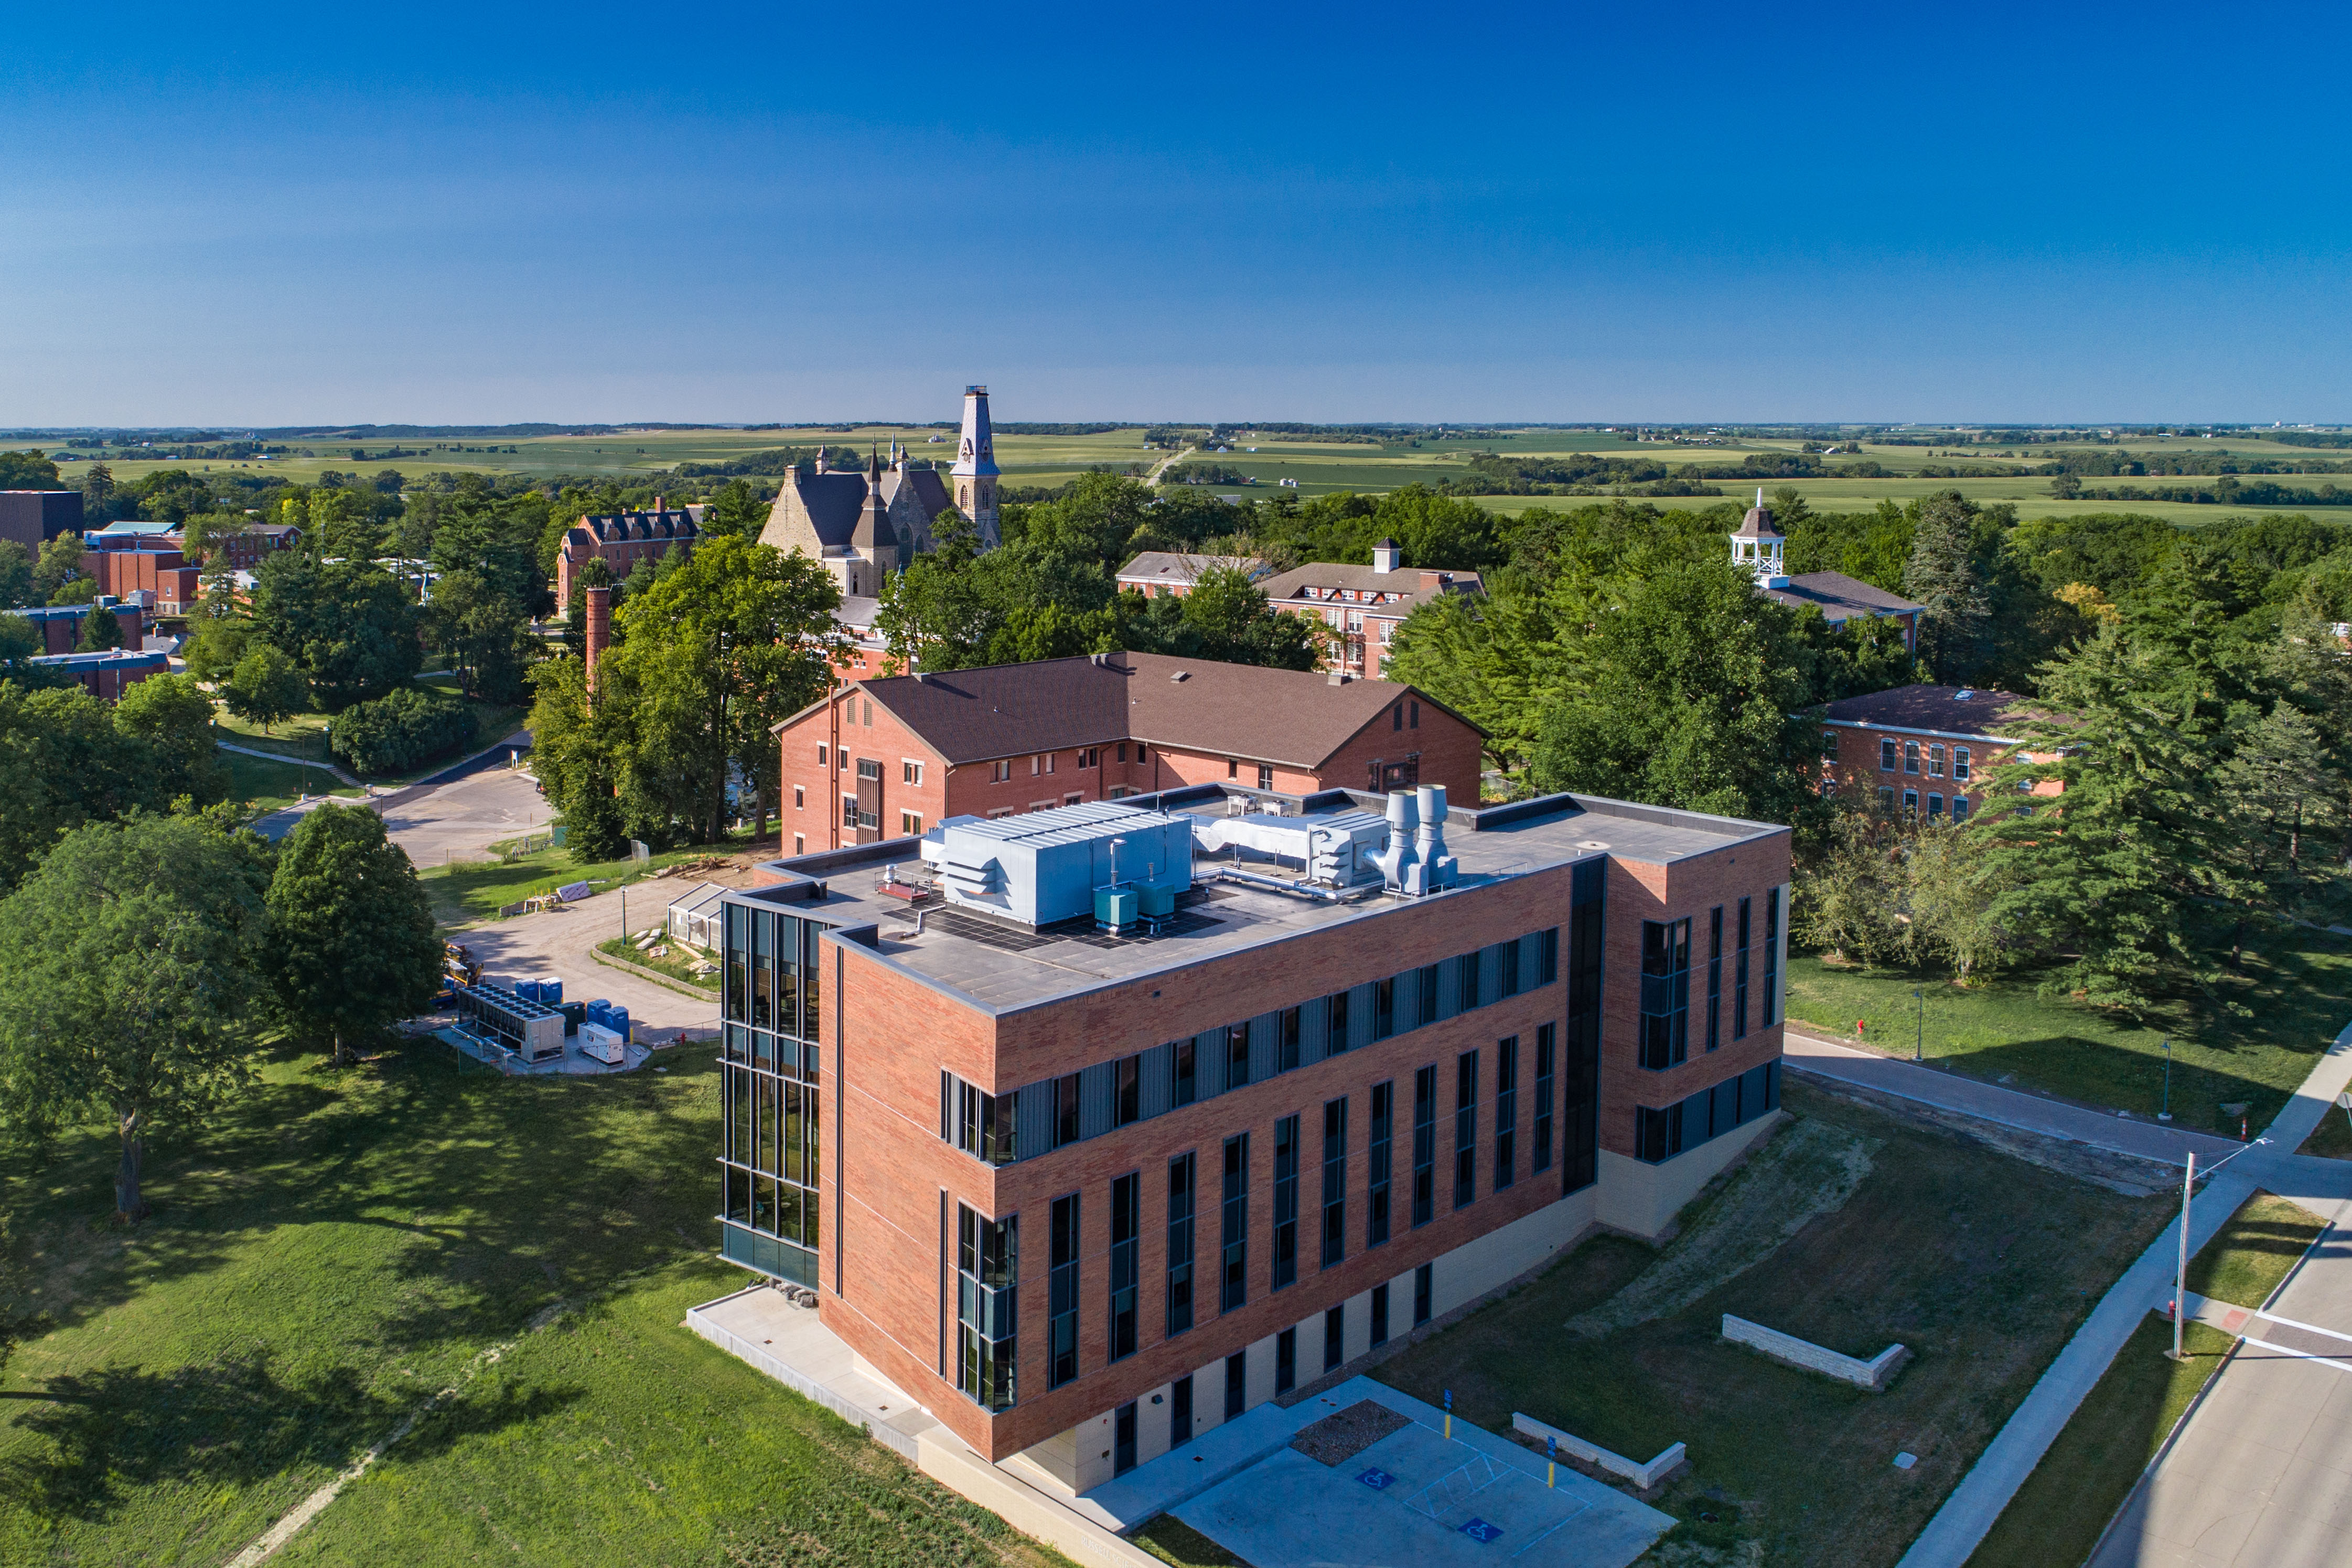 us news best colleges - HD4485×2990